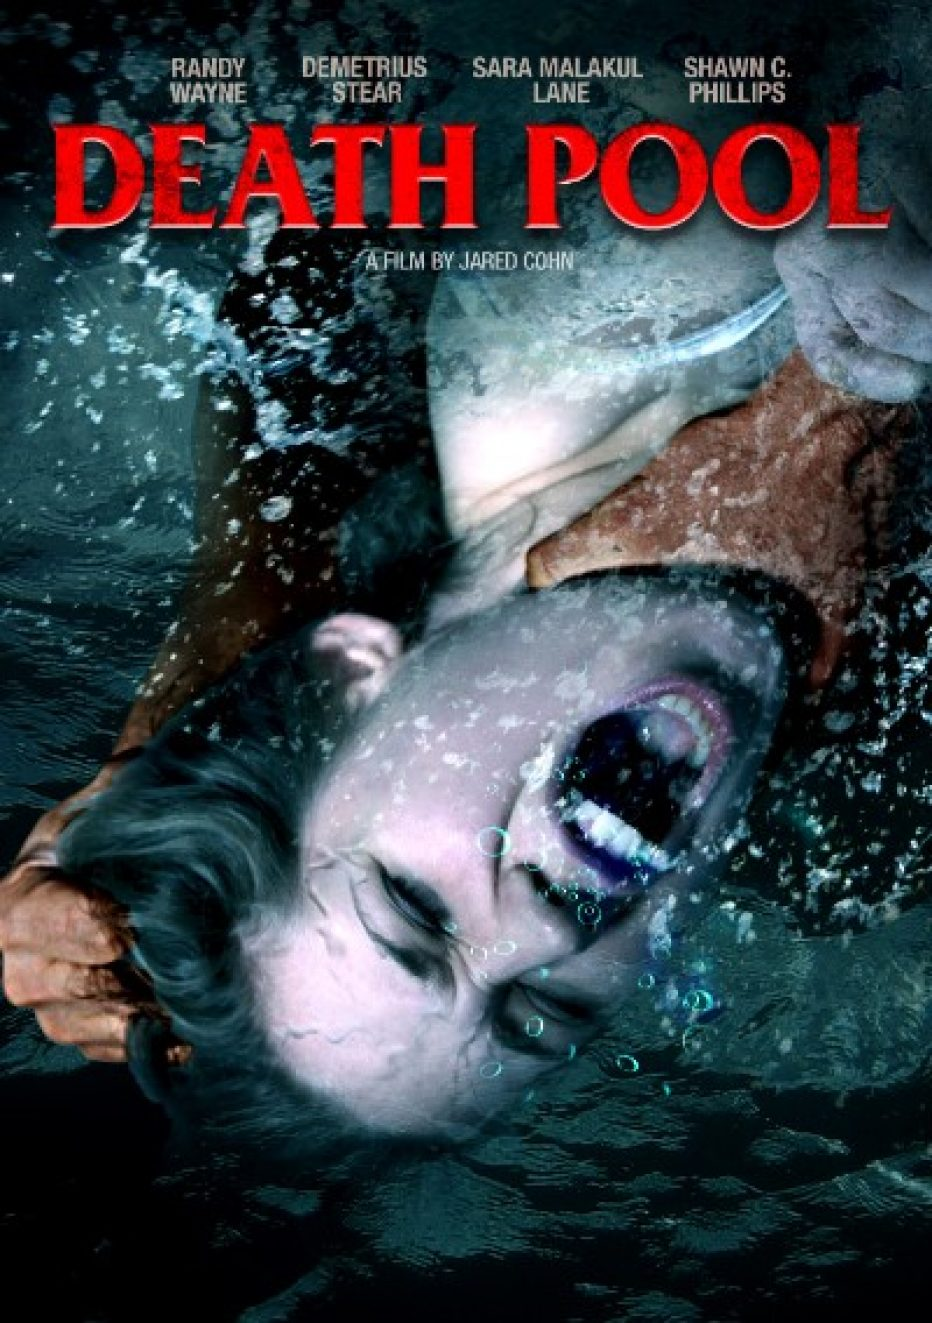 DEATH POOL Swims onto DVD & VOD 20th June